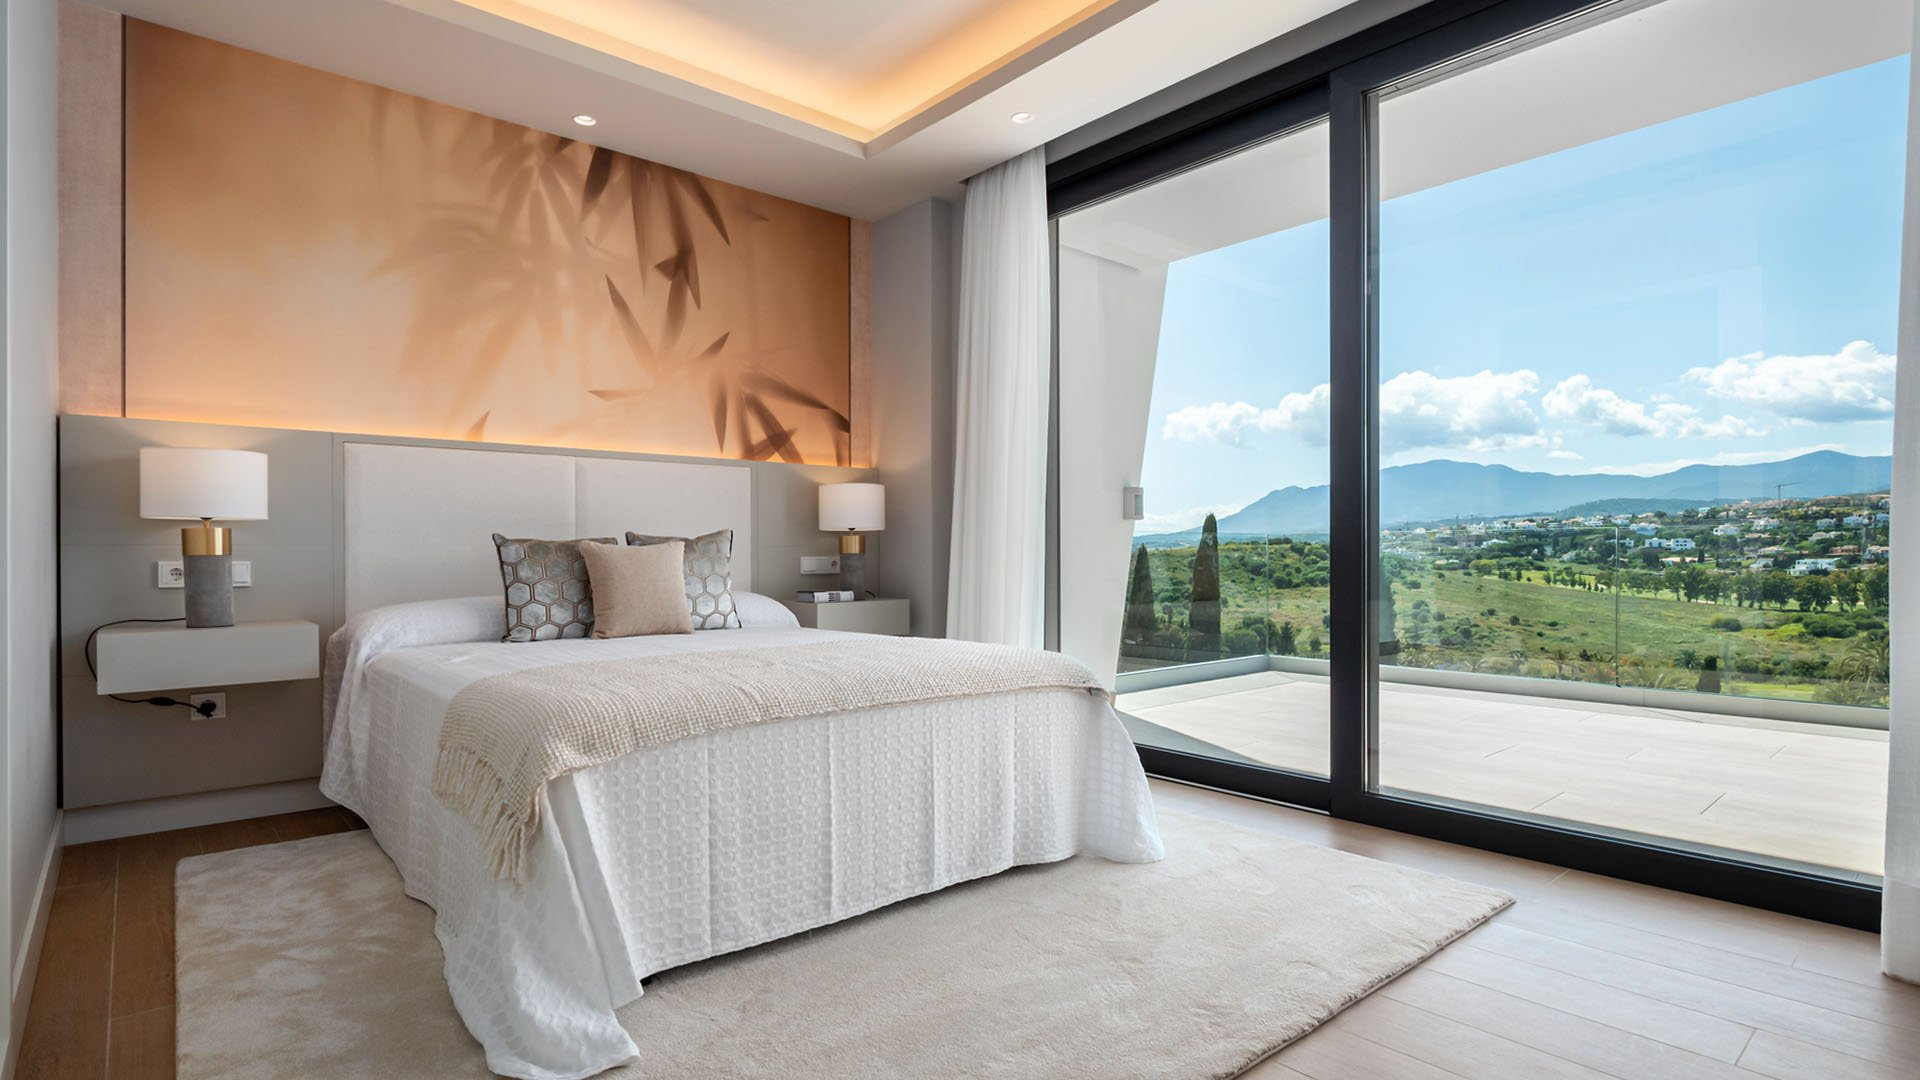 Light Blue Villas: Attractive project of 5 independent modern villas on the New Golden Mile